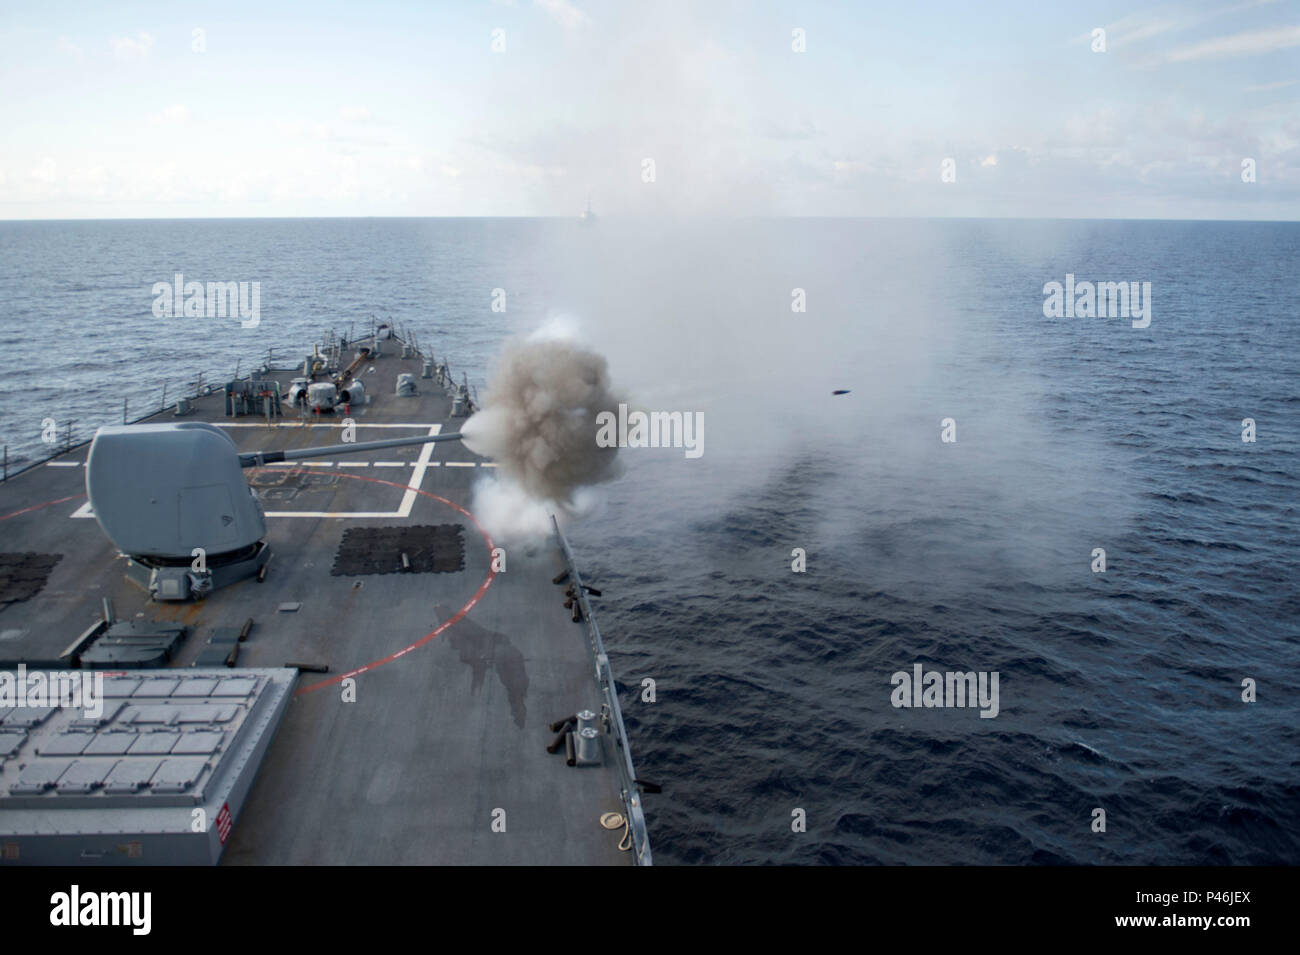 160630-N-XG464-278 ATLANTIC OCEAN (June 30, 2016) The Arleigh Burke-class guided-missile destroyer USS Cole (DDG 67) fires a MK 45 5-inch gun during a live-fire exercise. Cole is conducting routine training and operations in preparation for its upcoming deployment with the George H.W. Bush Strike Group. (U.S. Navy photo by Mass Communication Specialist 2nd Class Jonathan B. Trejo/Released) - Stock Image